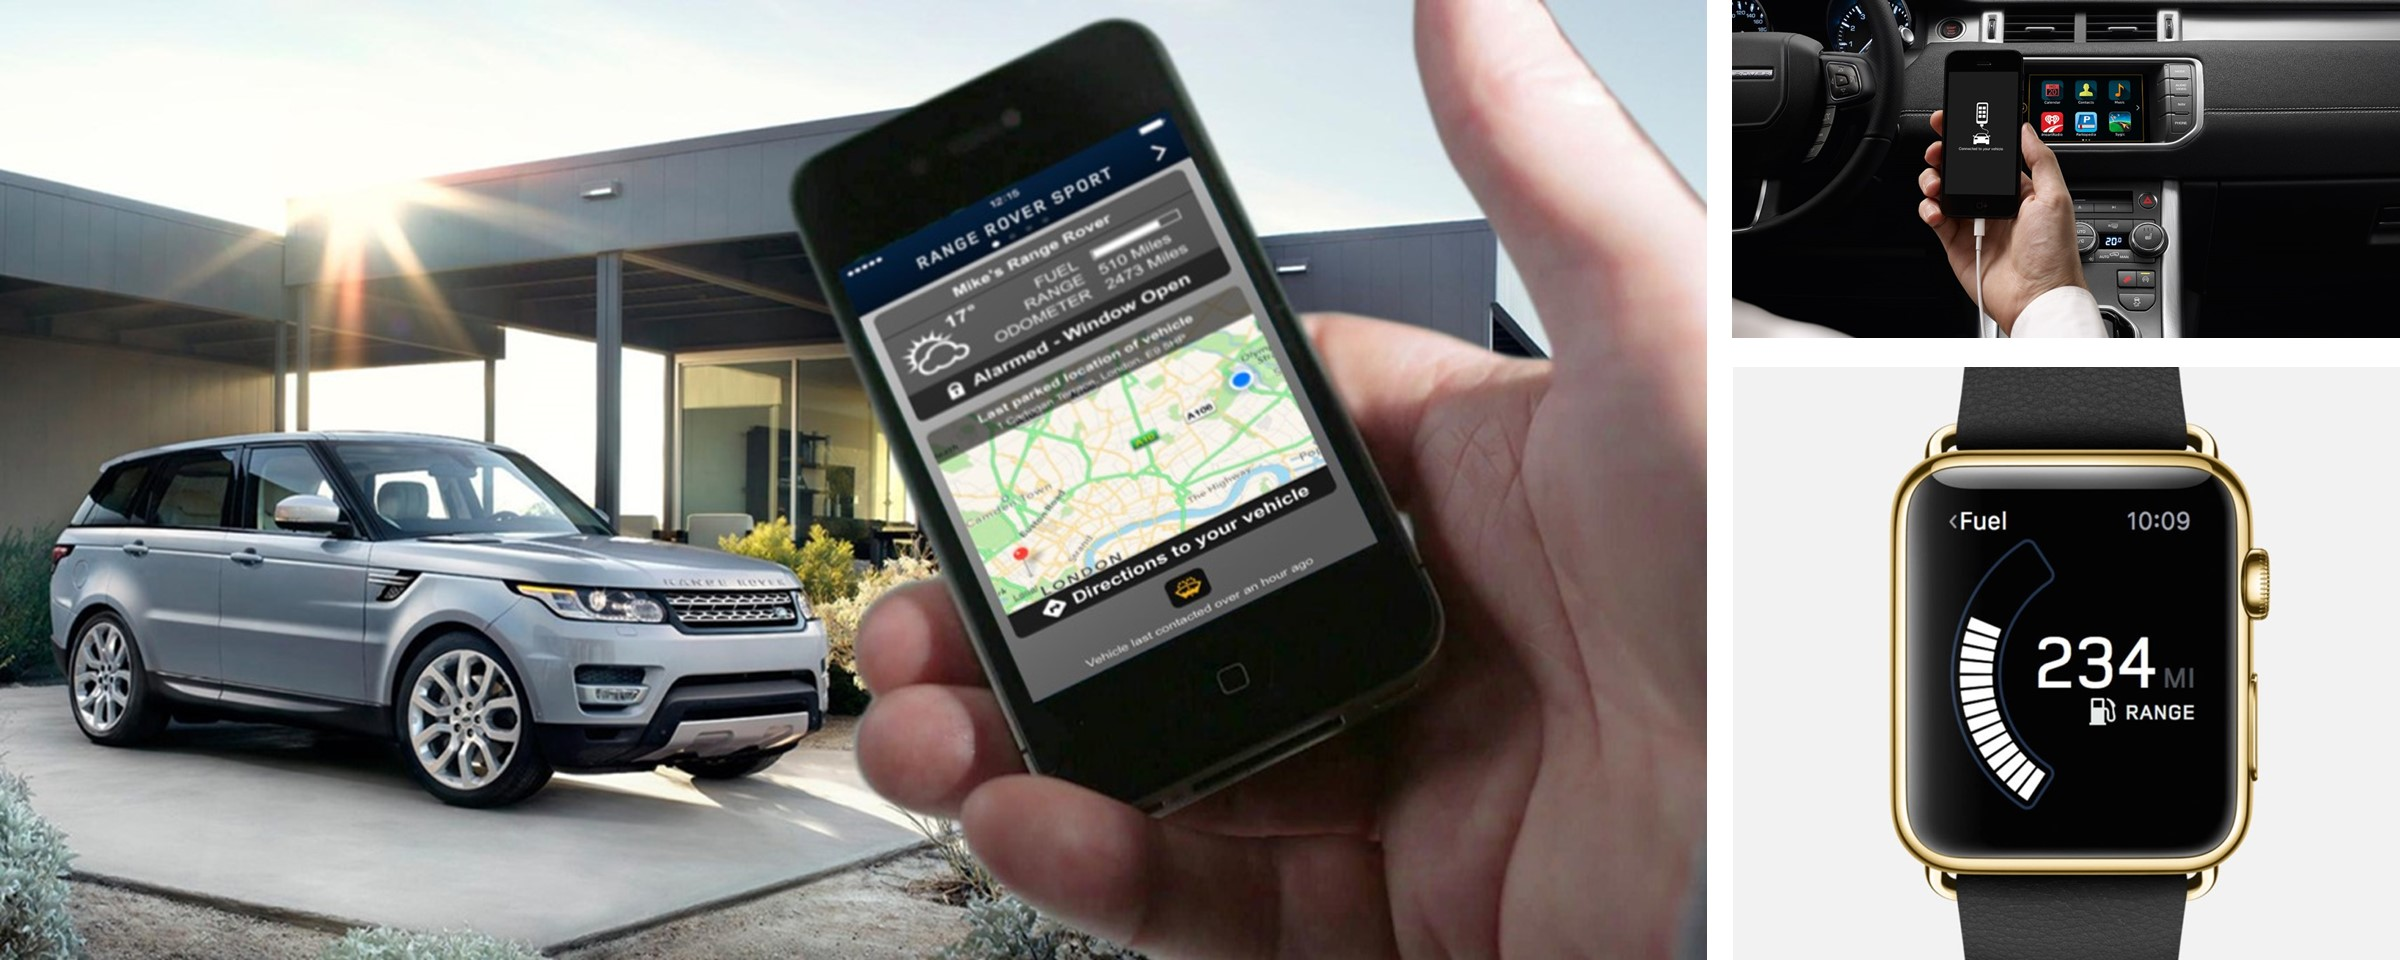 Land Rover s InControl App Merges Smartphone Technology with the SUV